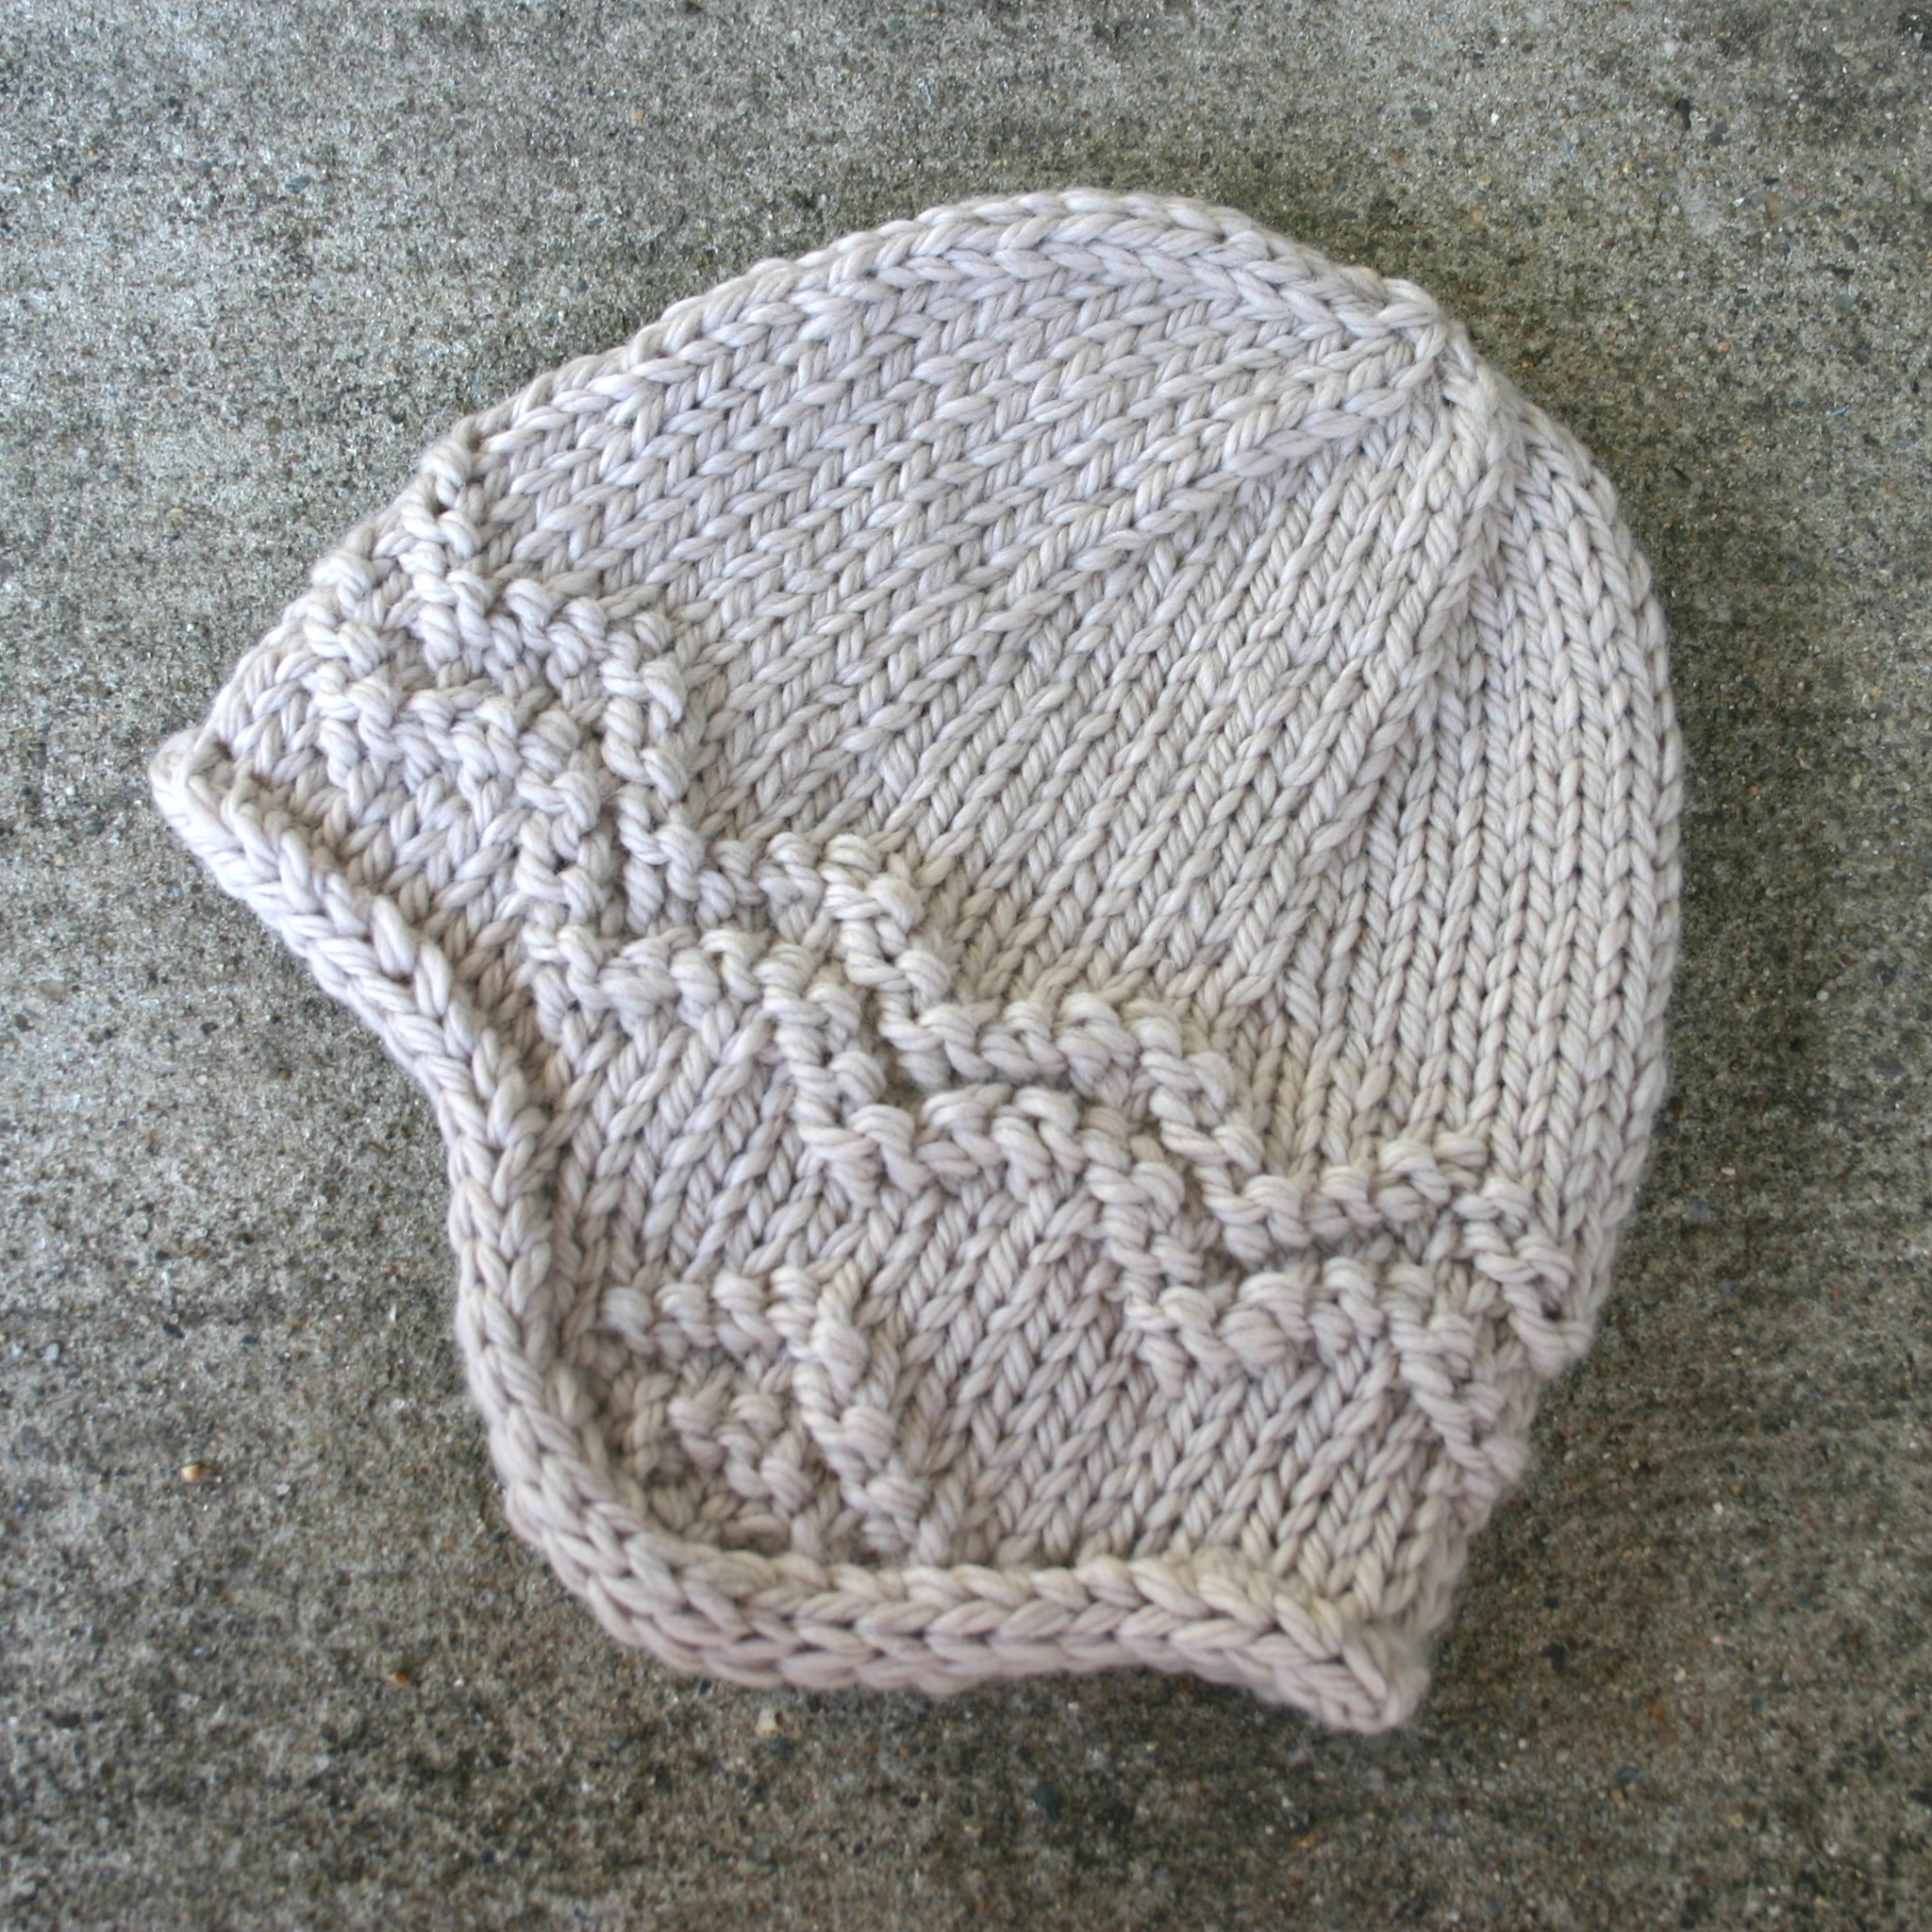 ... knitting pattern for an adults earflap hat, knit in bulky weight wool